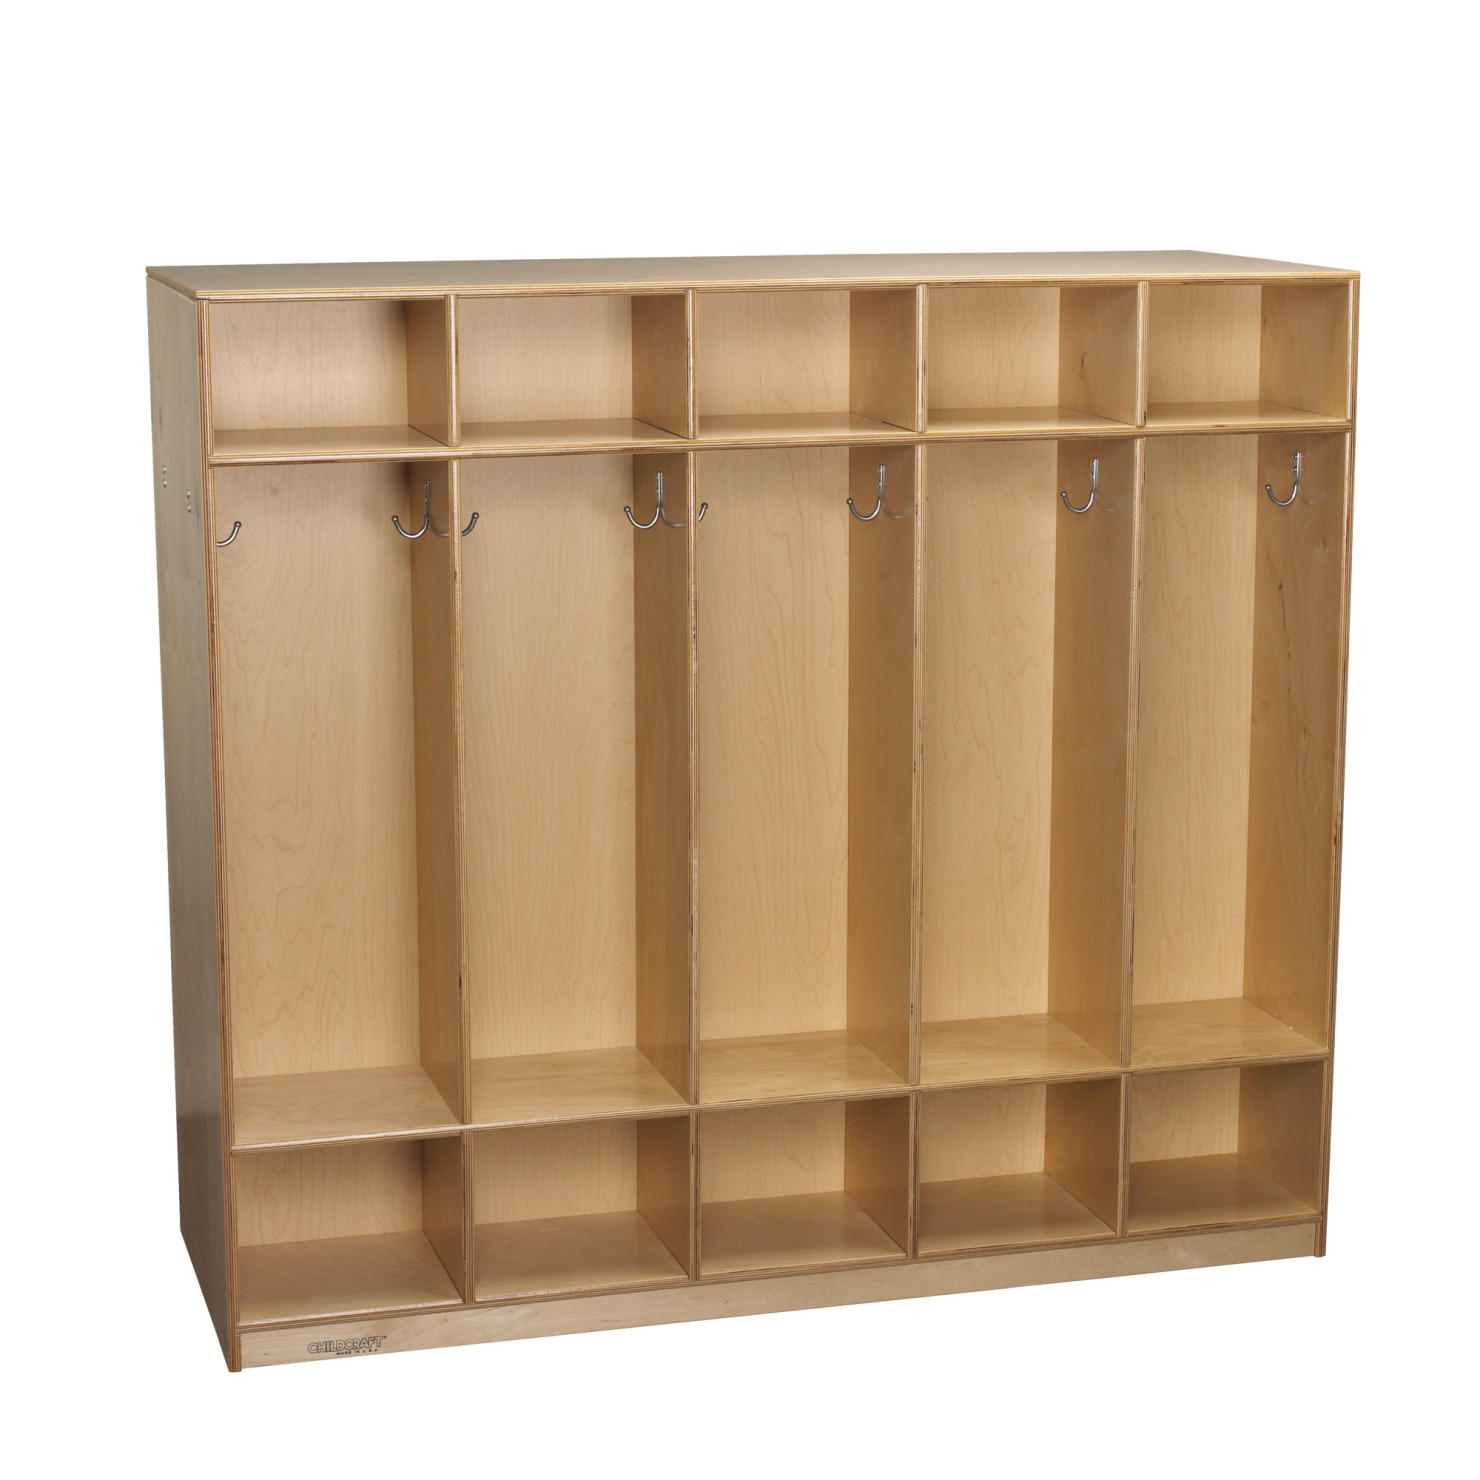 wood way at pin to two check best paint double bookcase furniture sided more